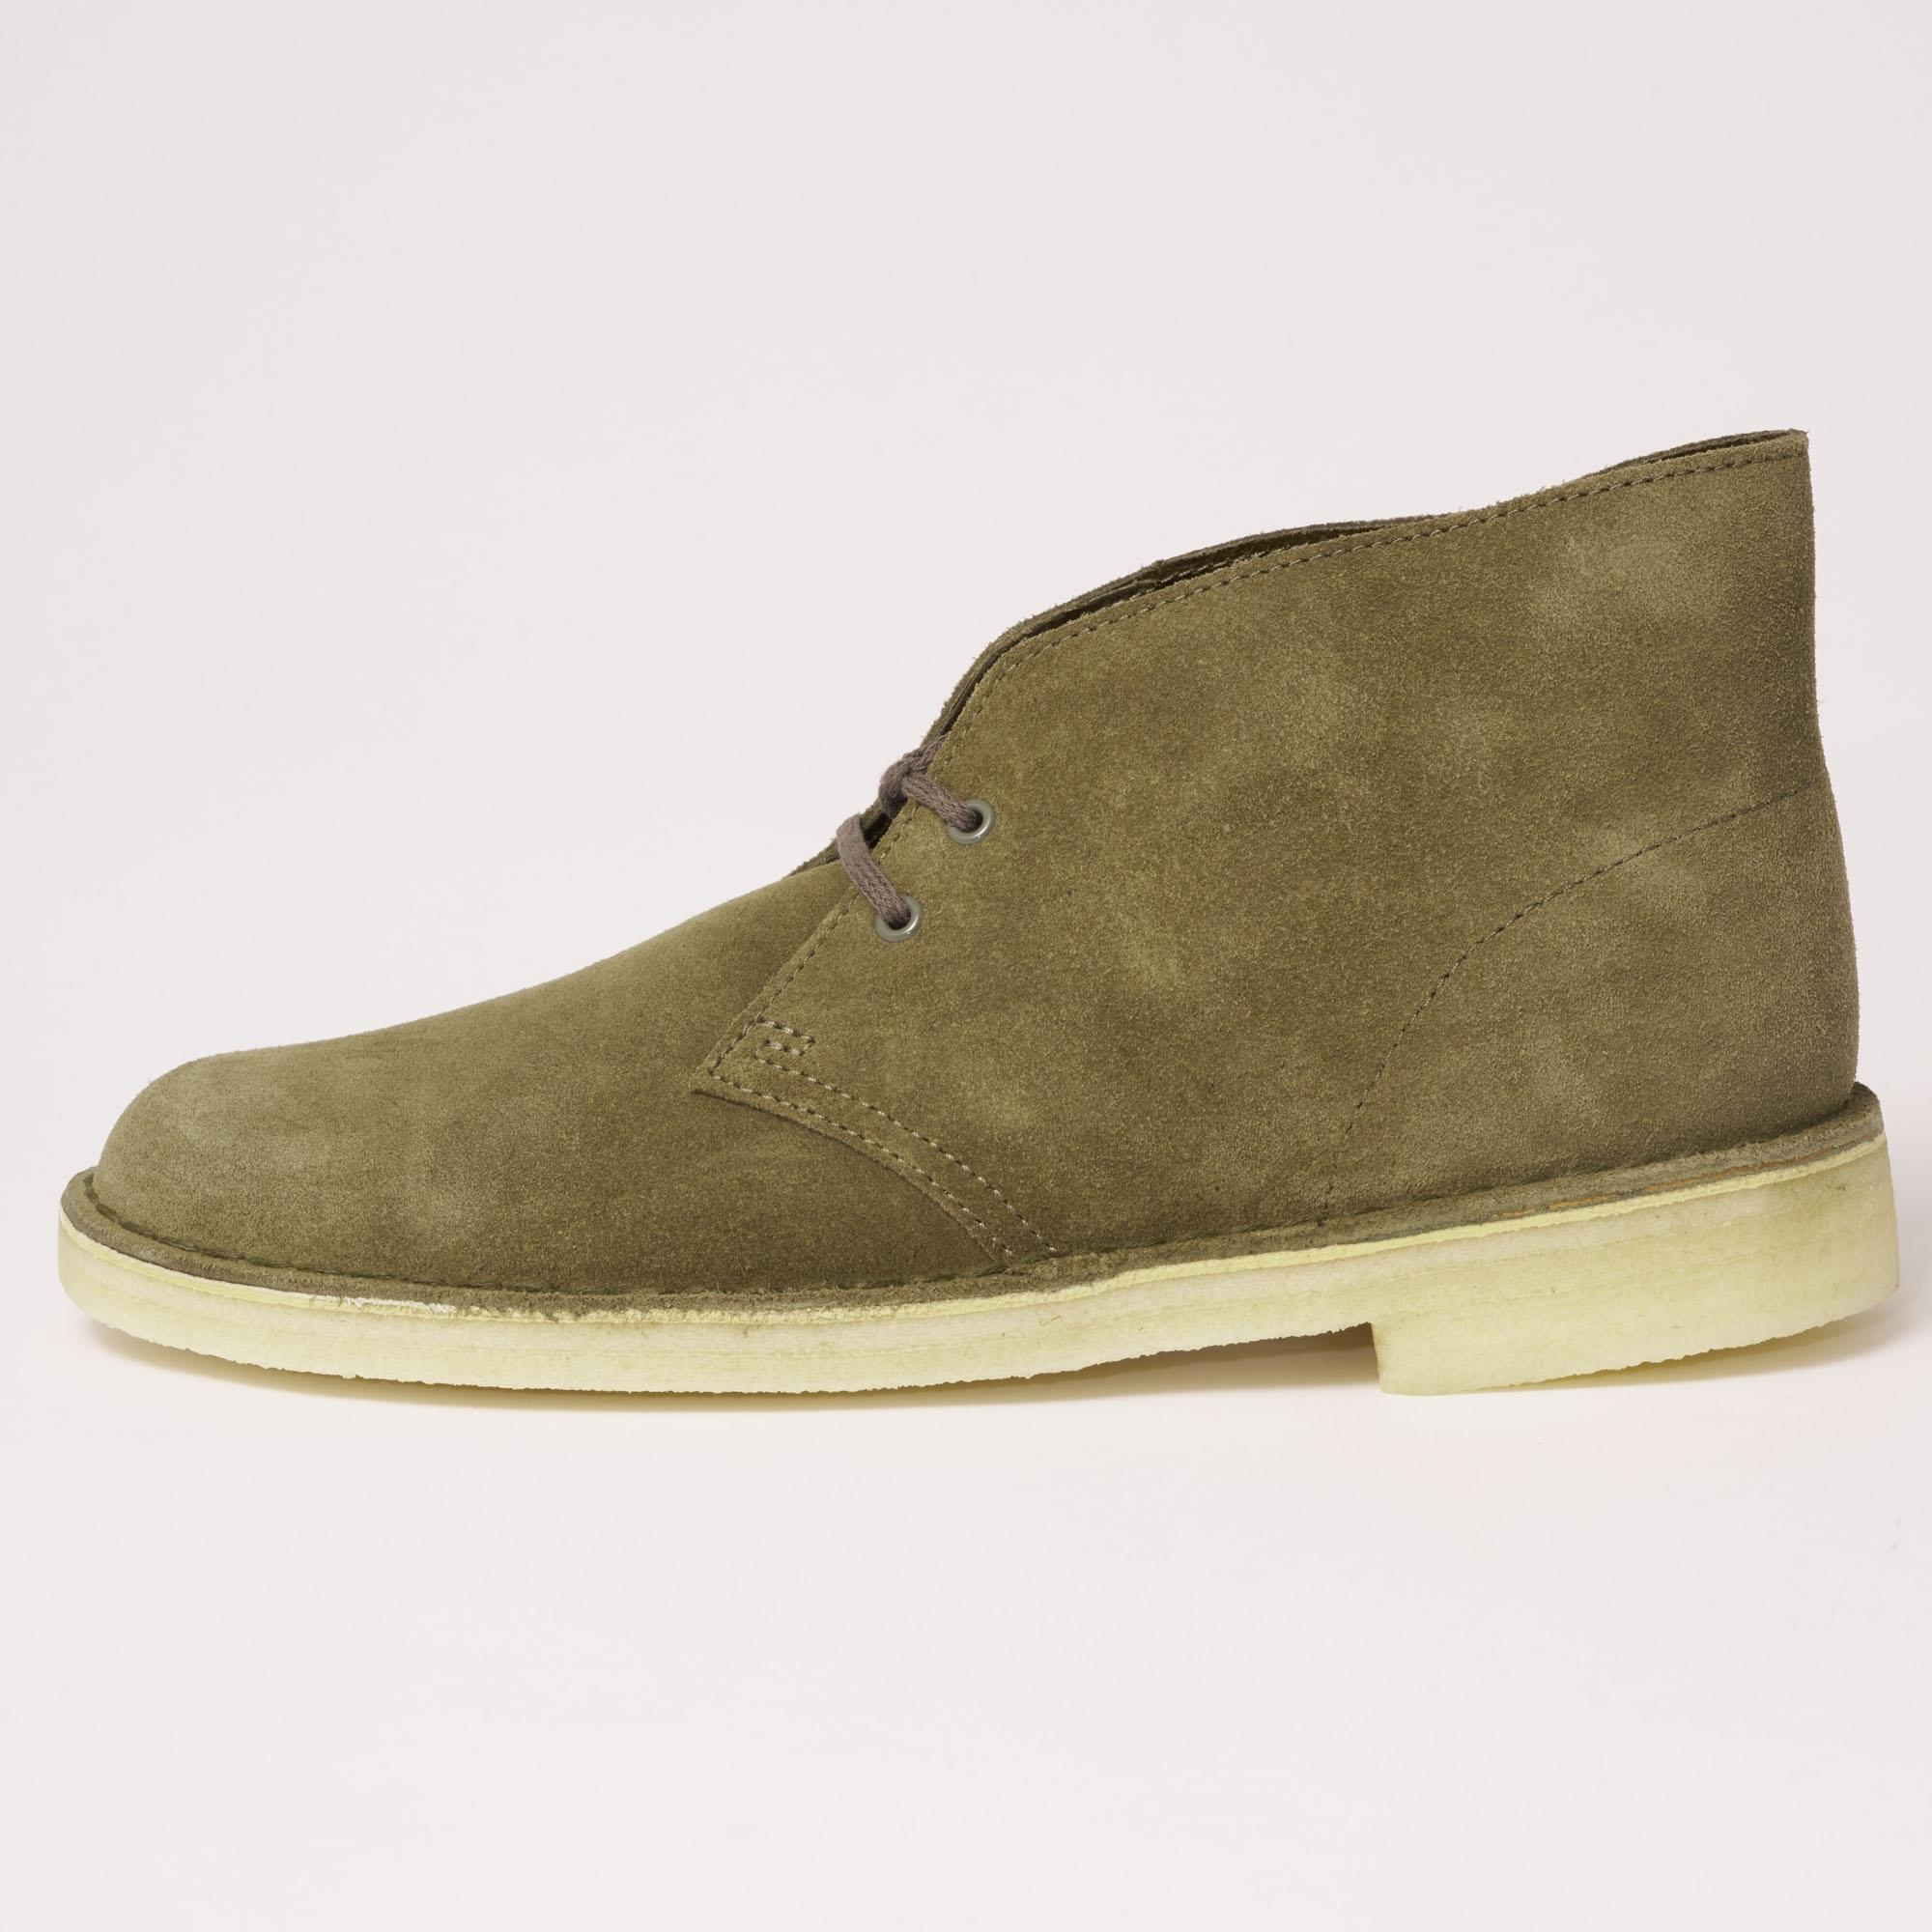 Clarks Suede Desert Boots in Olive